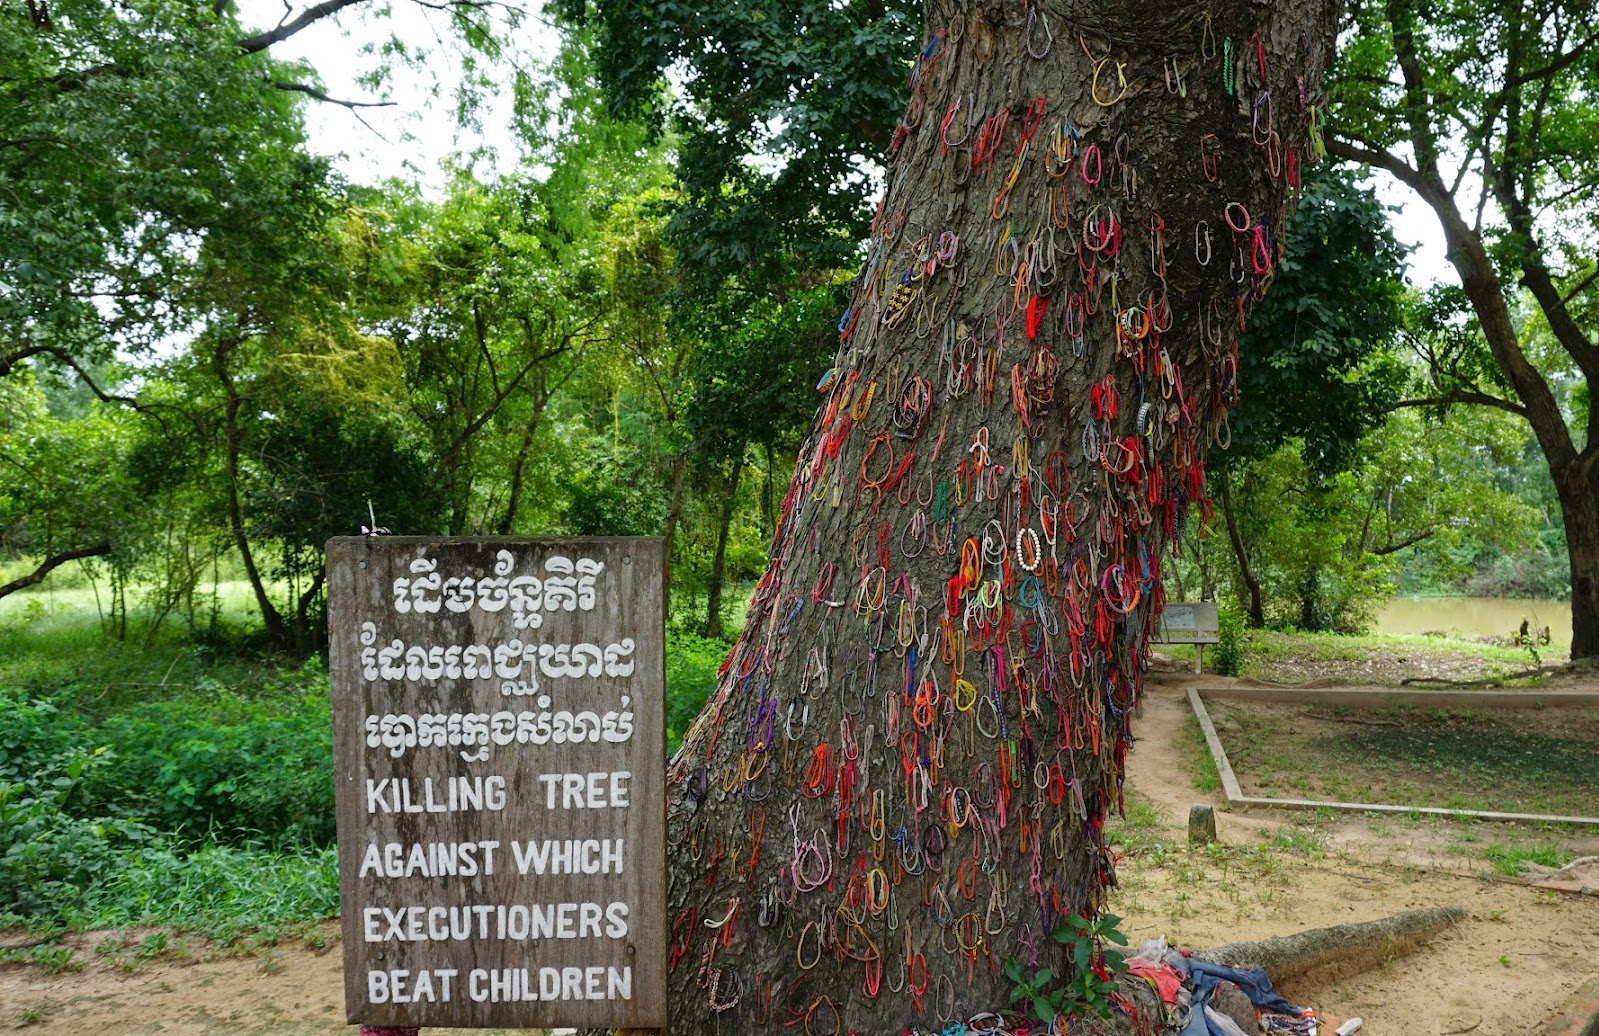 The killing tree